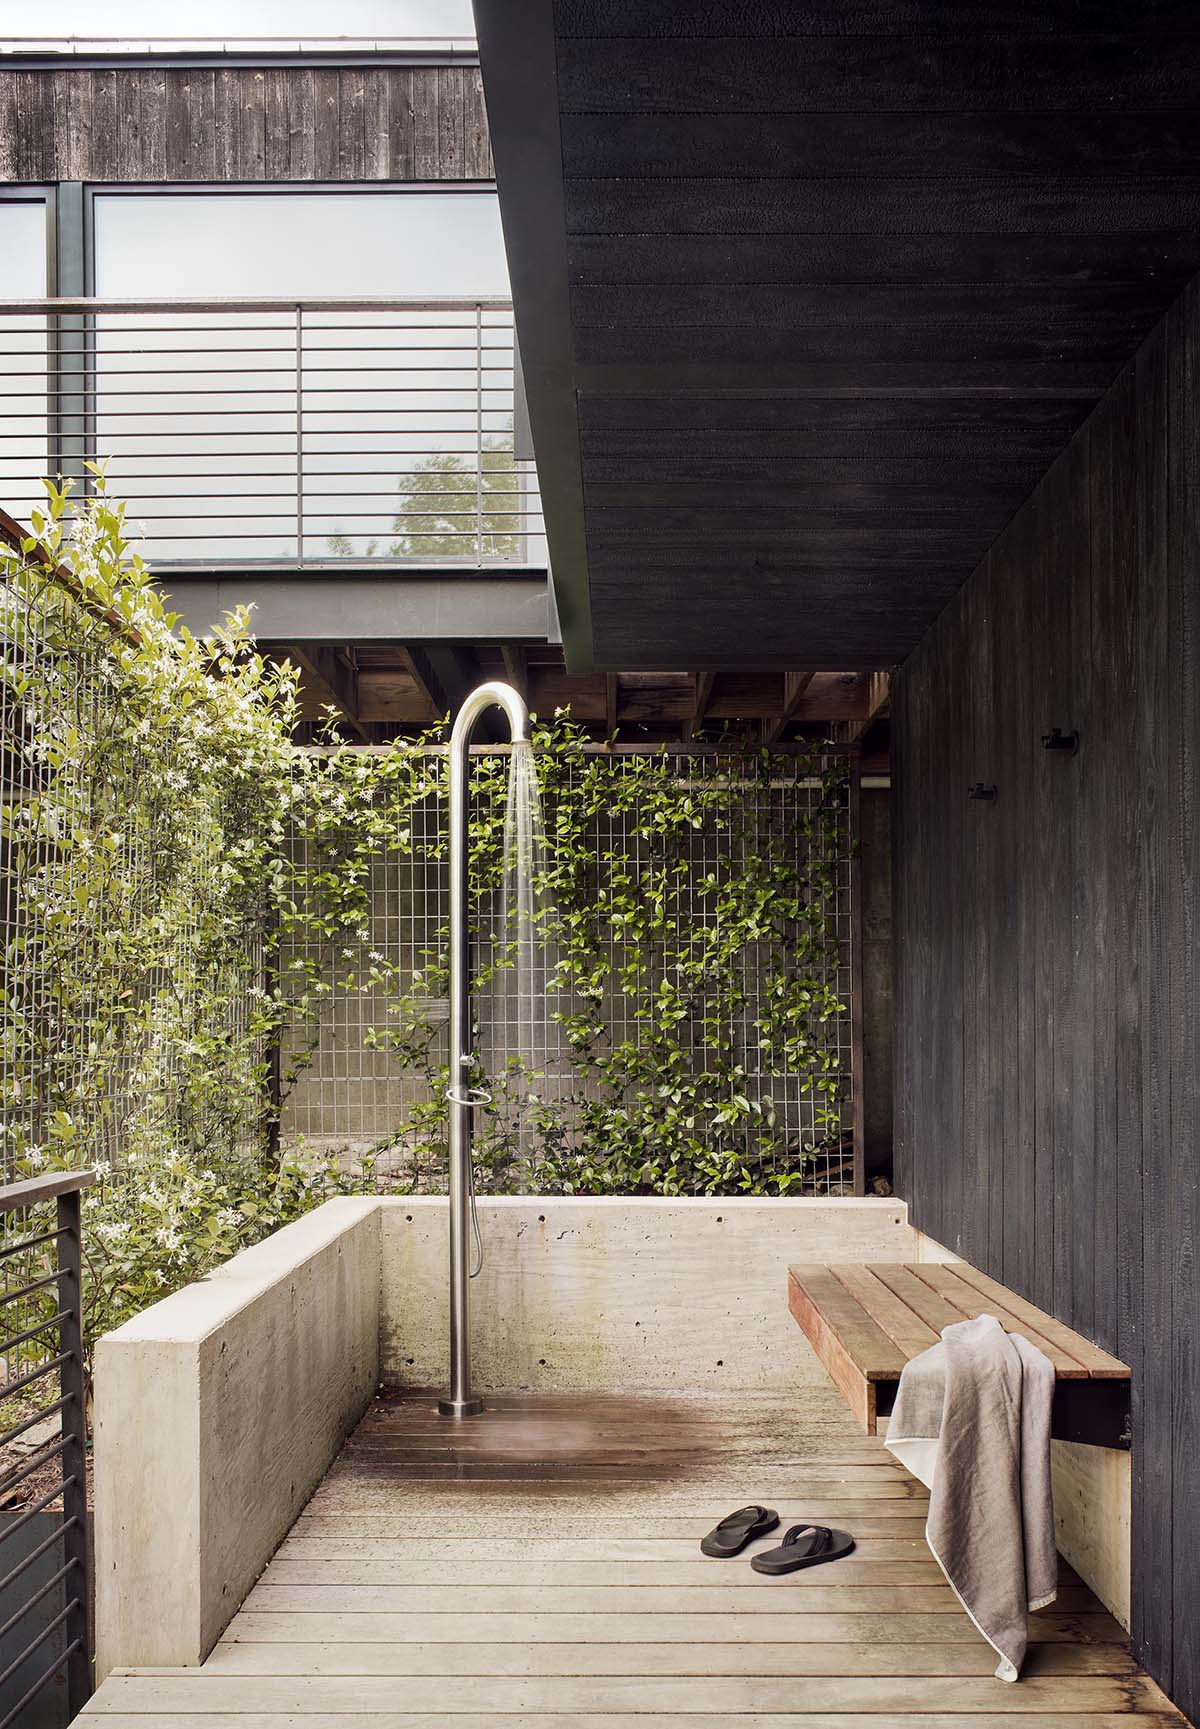 A modern outdoor shower.